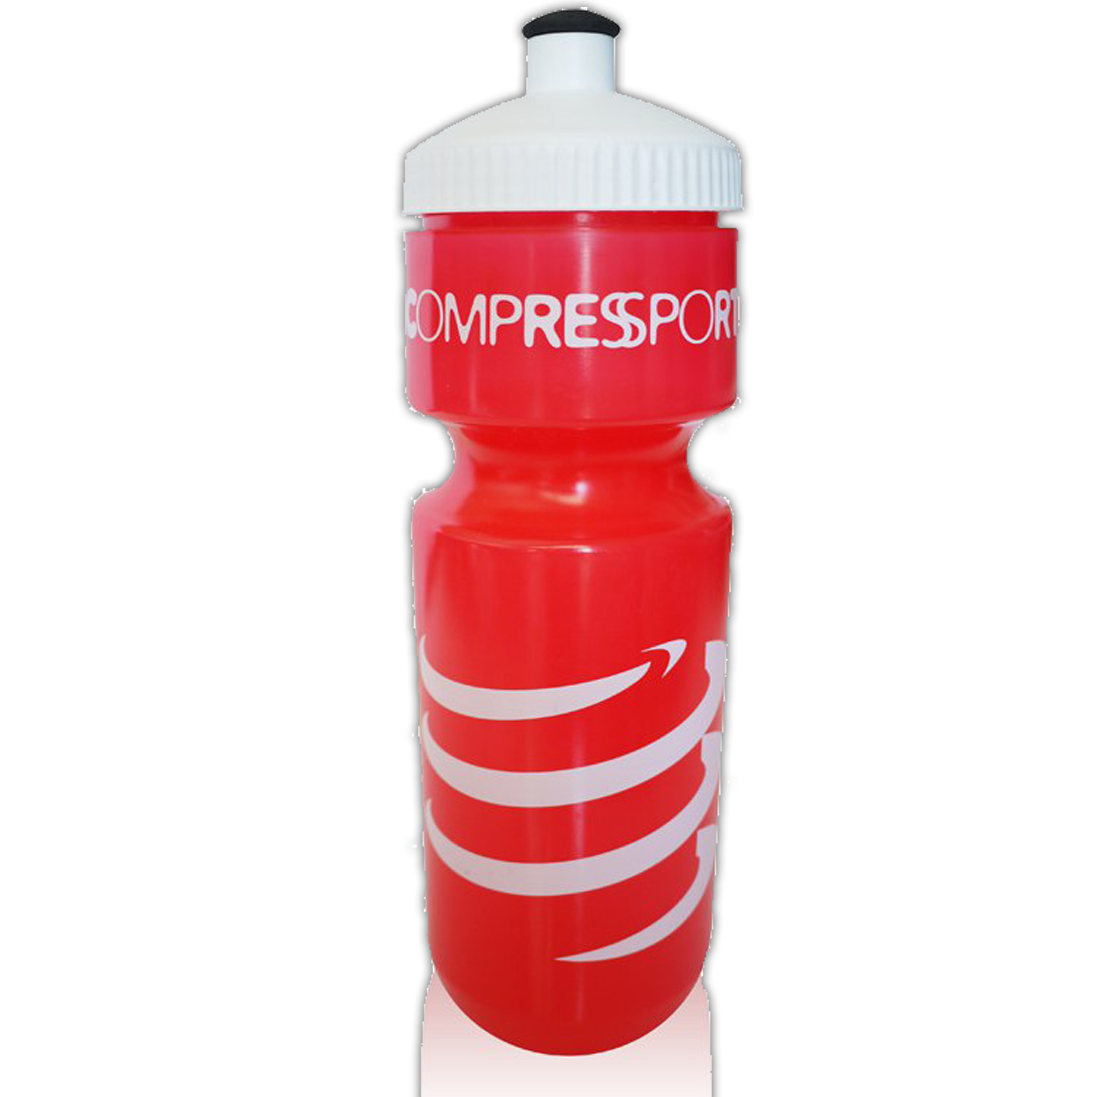 compressport water bottle drink cage bike energia sports